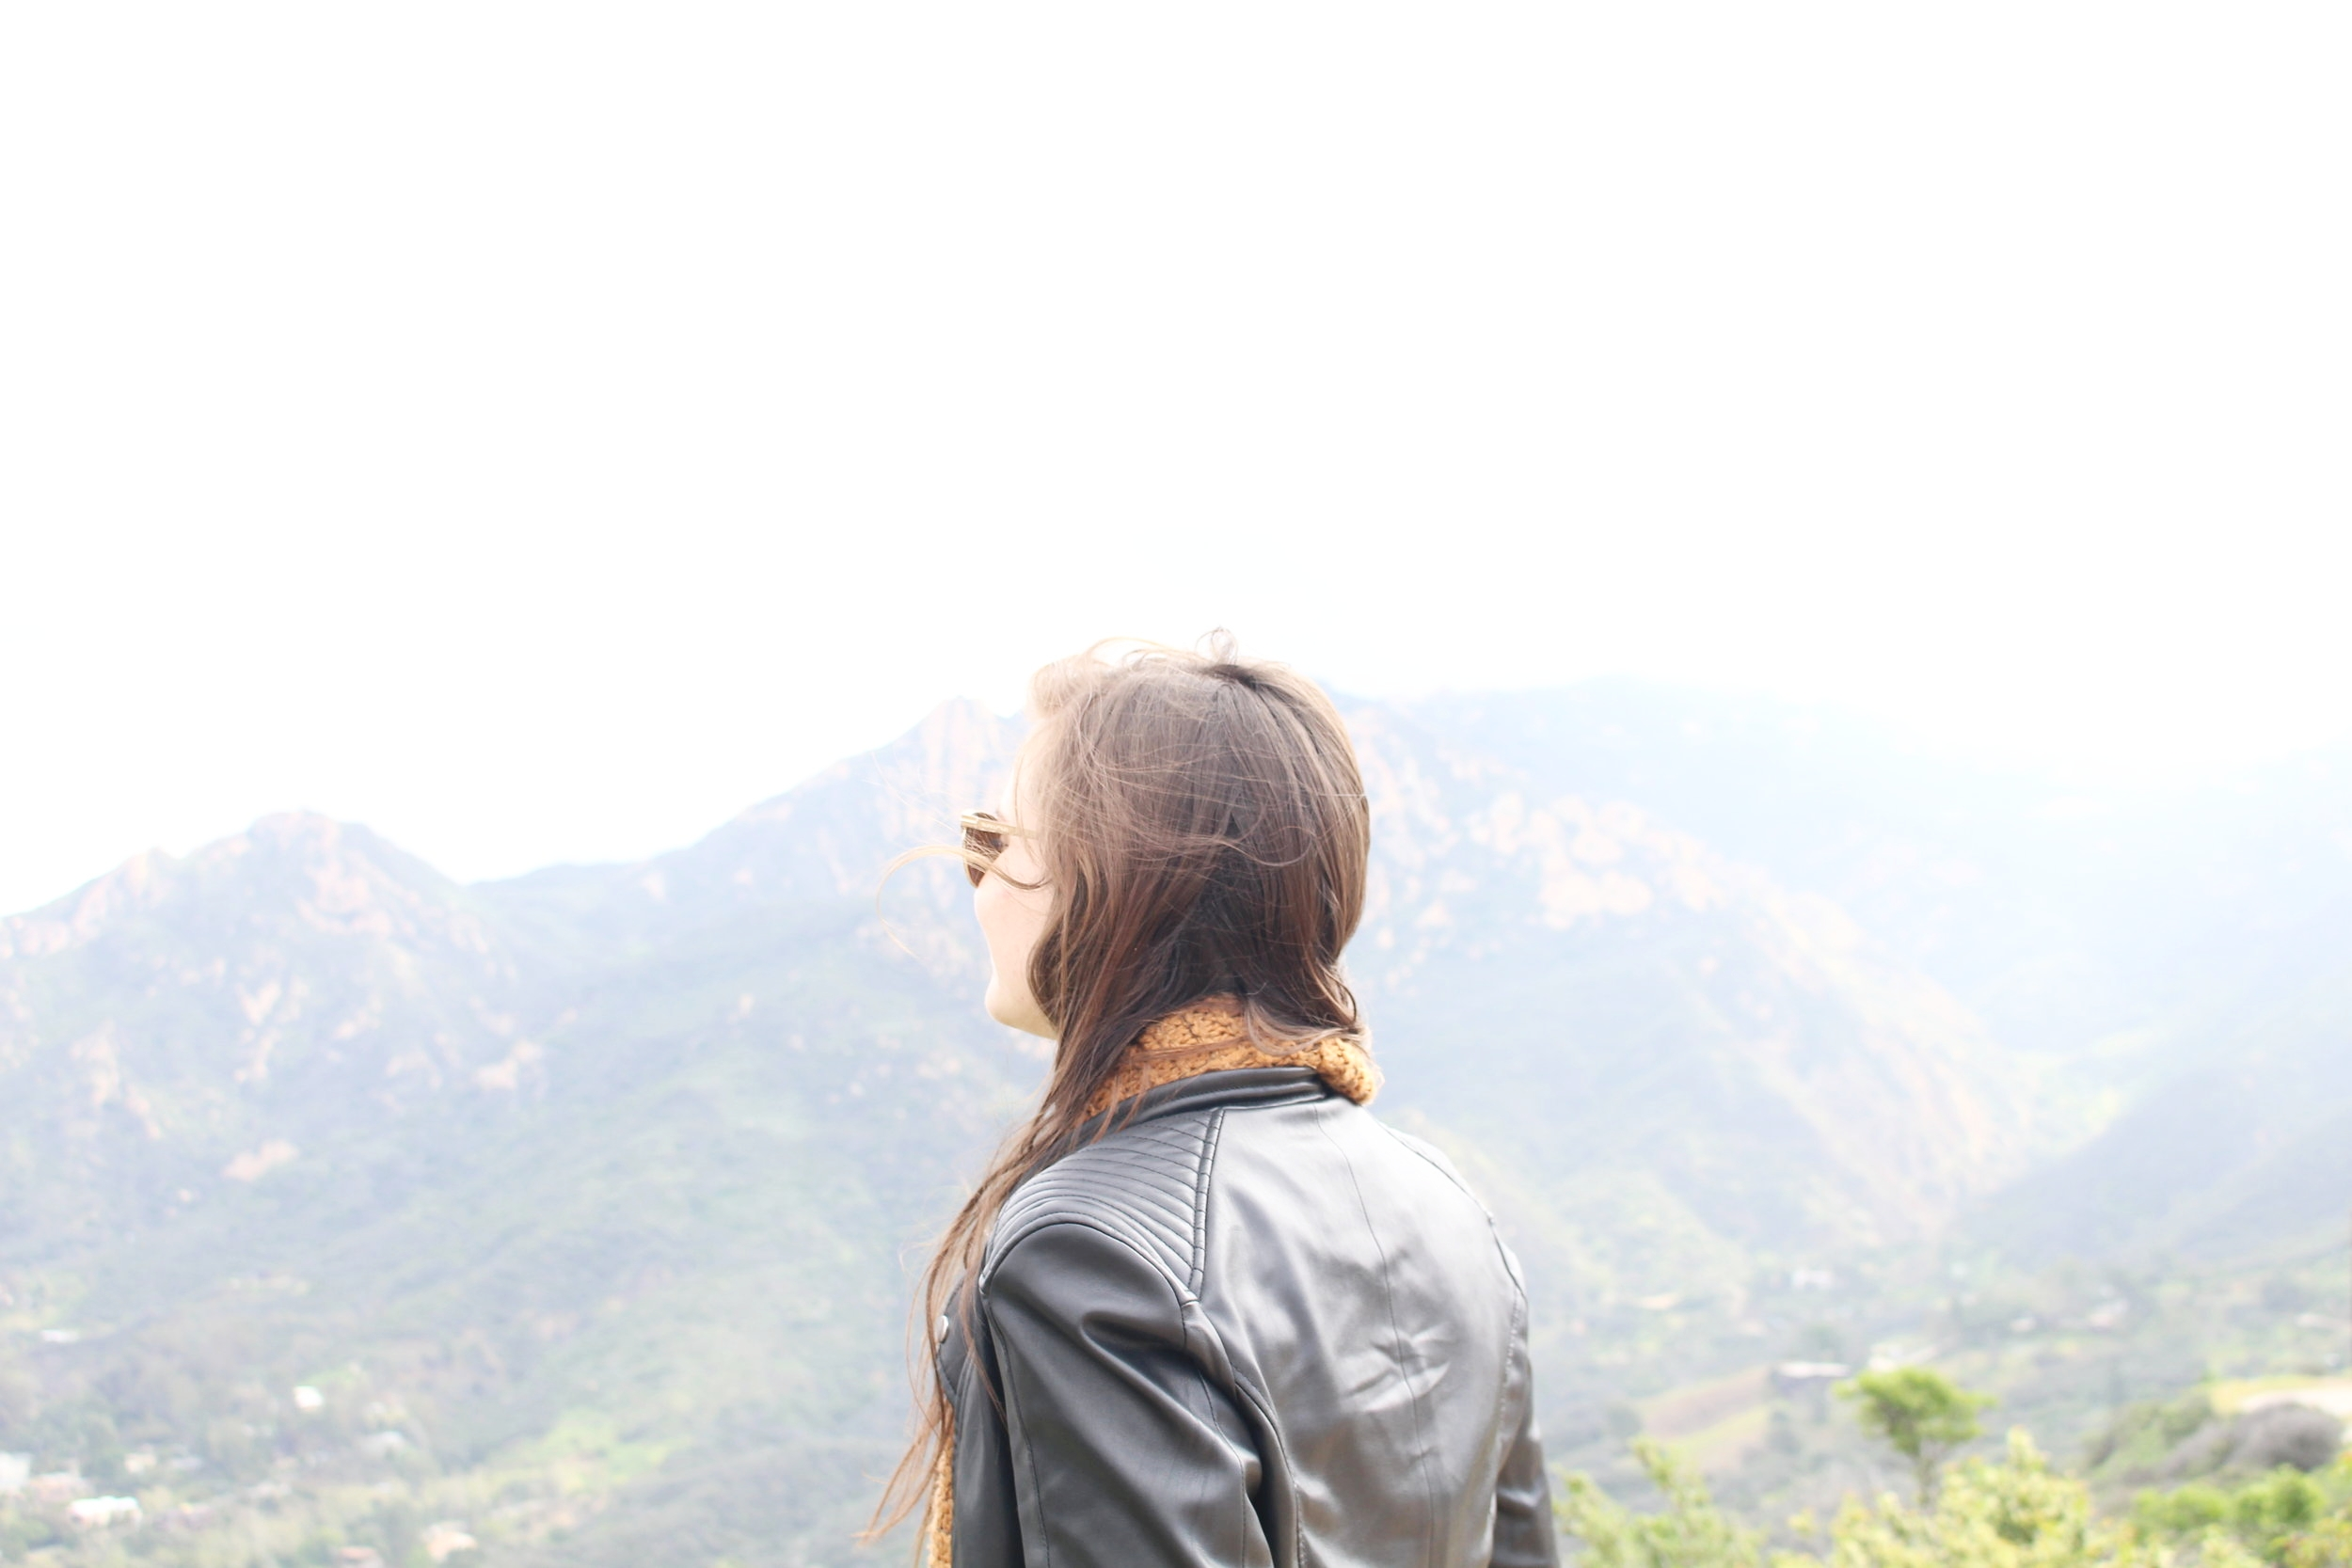 A photo I took this past spring of my best friend, Anna, on a foggy morning in Malibu